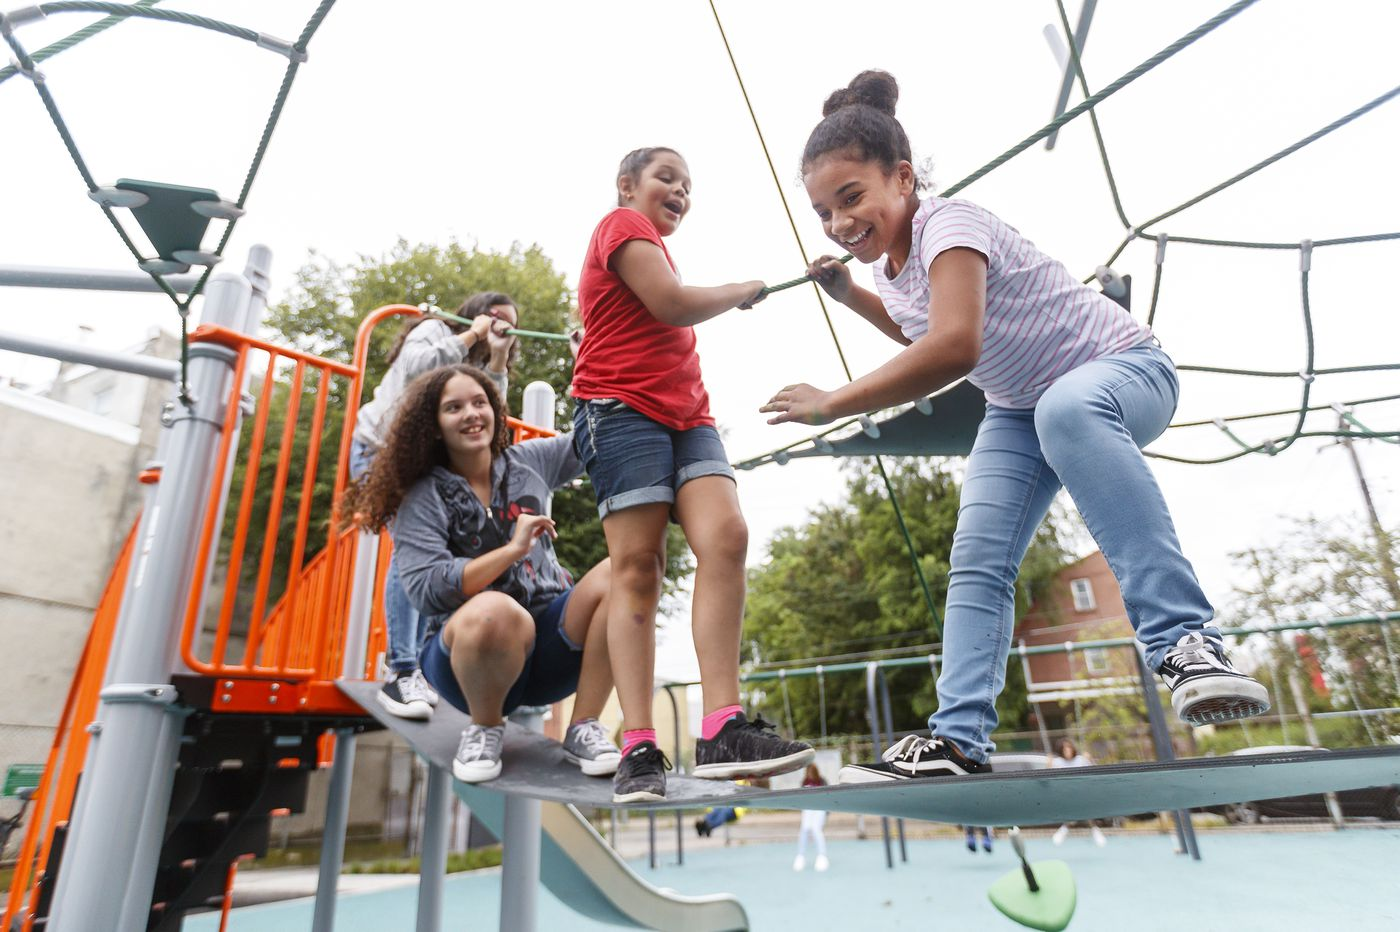 New play area opens at Fishtown Rec Center — the first completed project tied to Mayor Kenney's Rebuild initiative